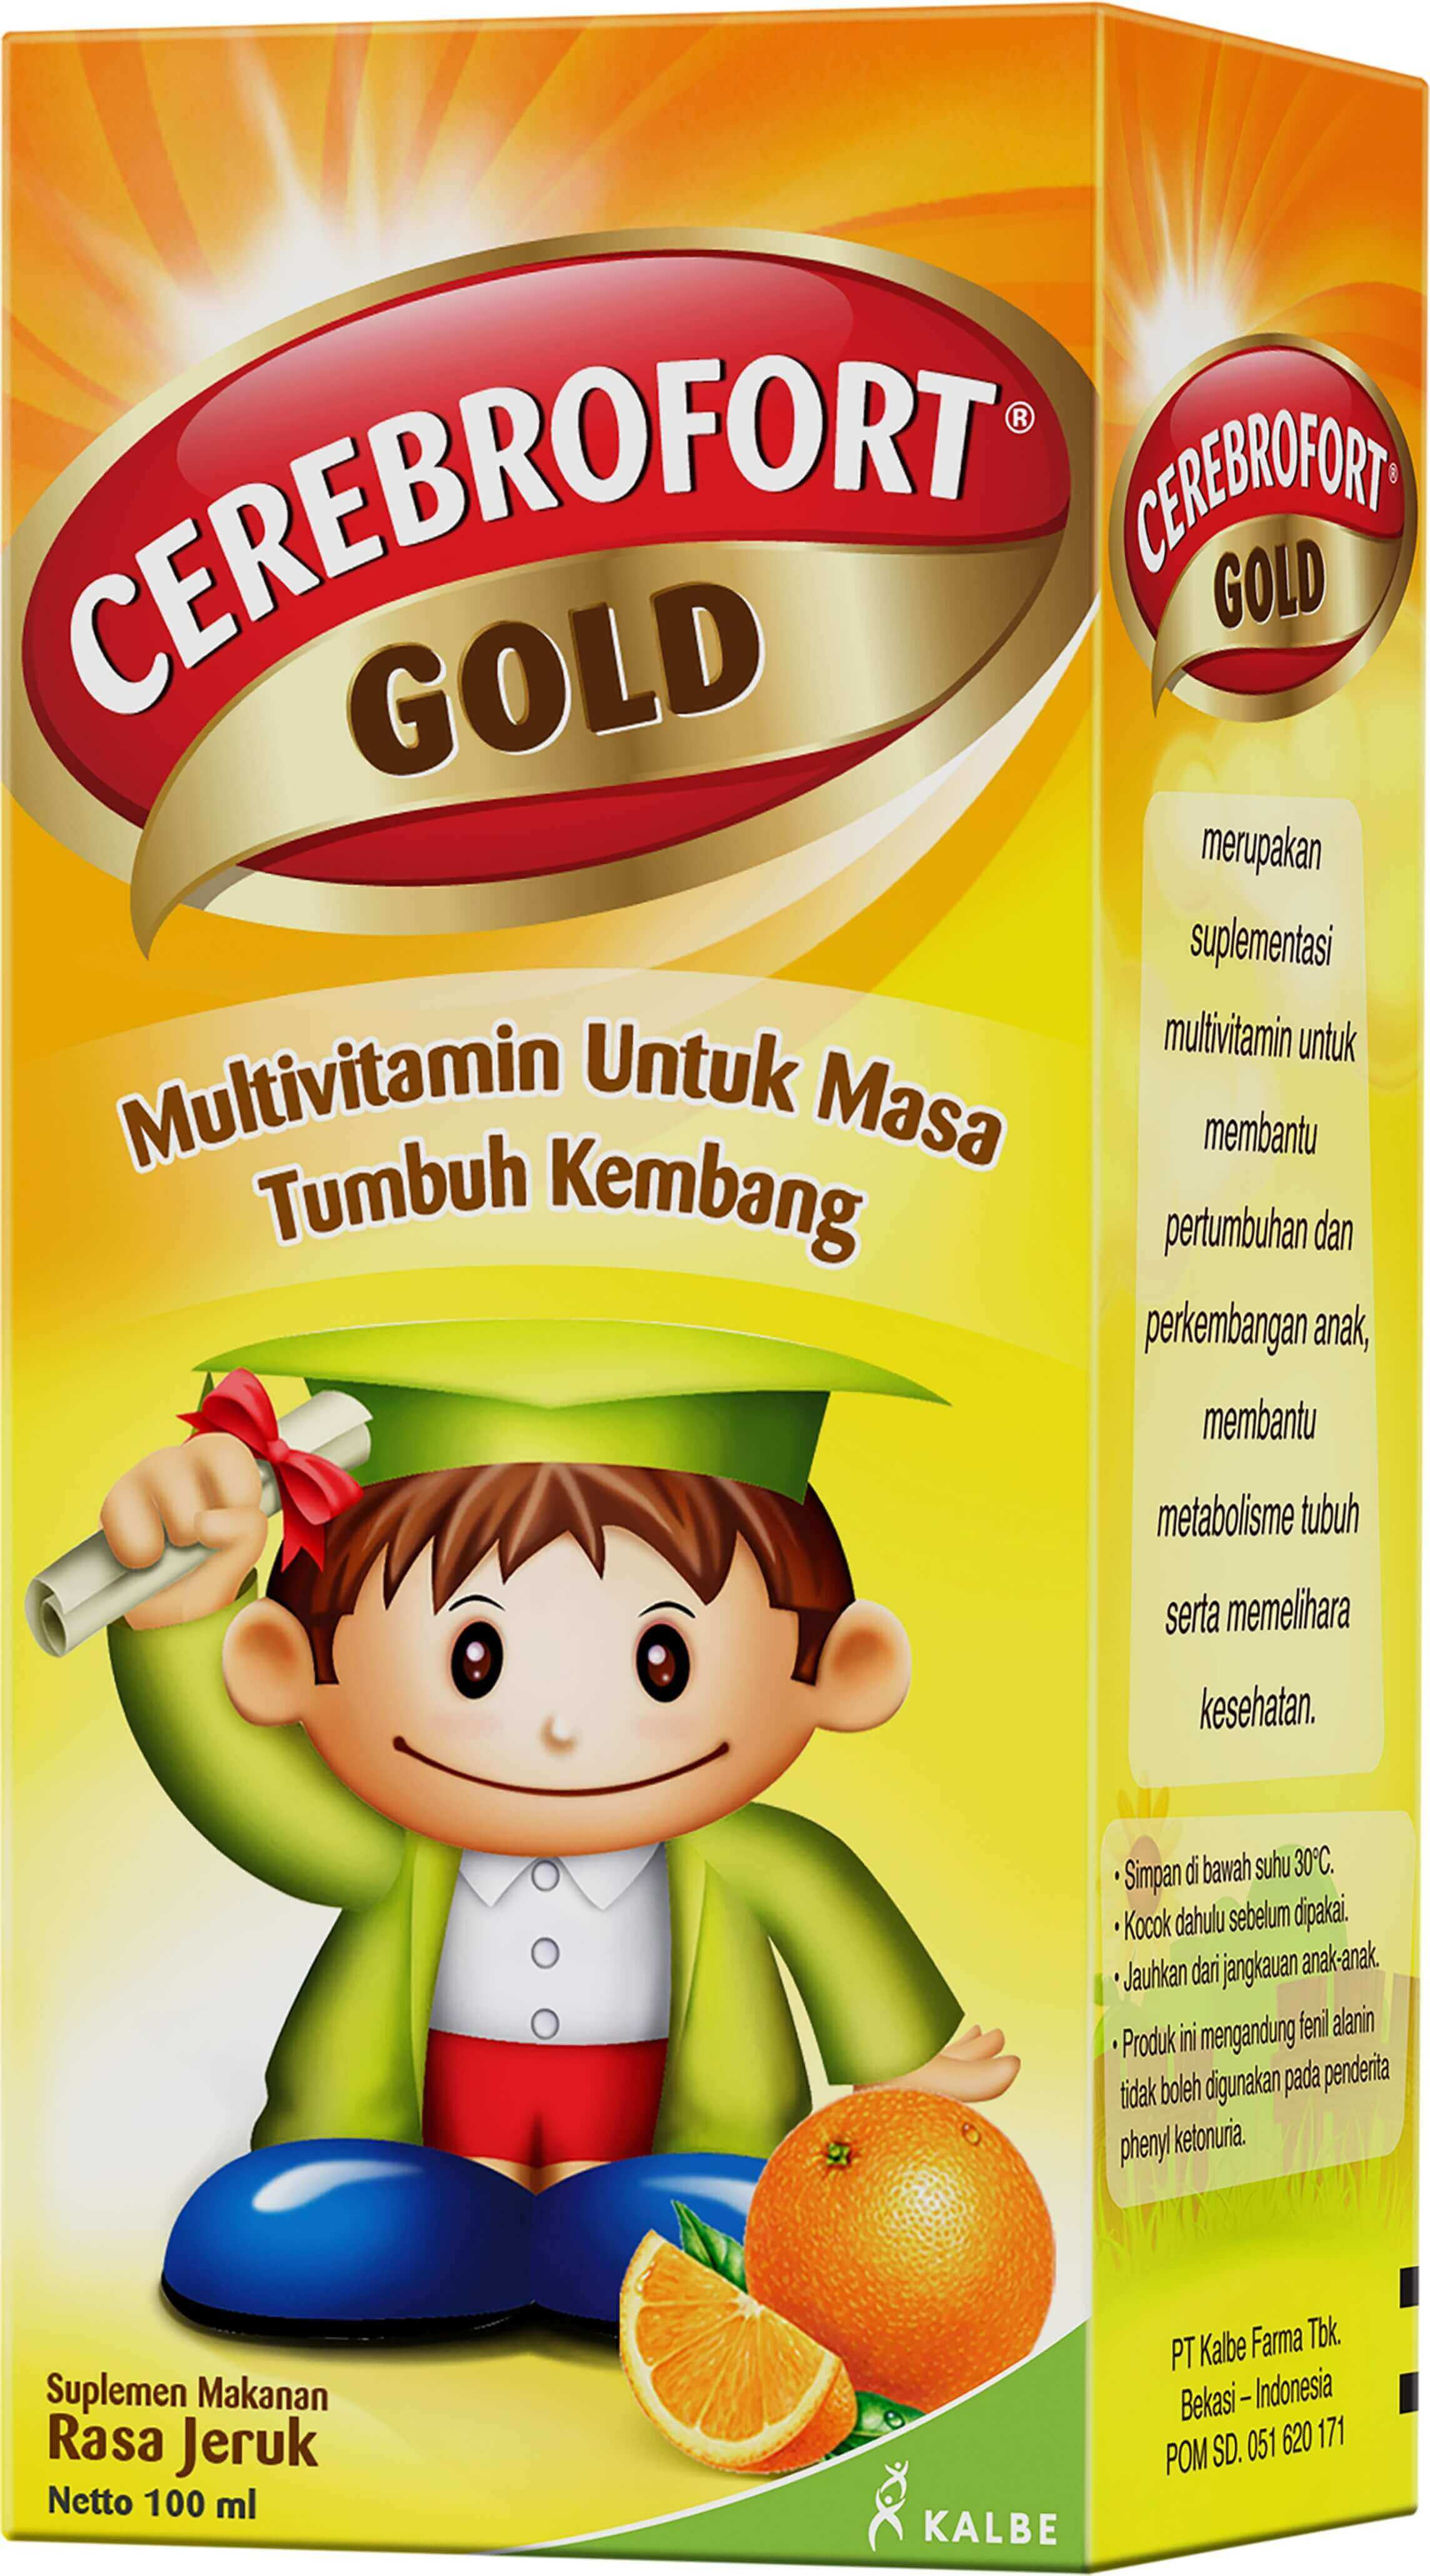 cerebrofort gold